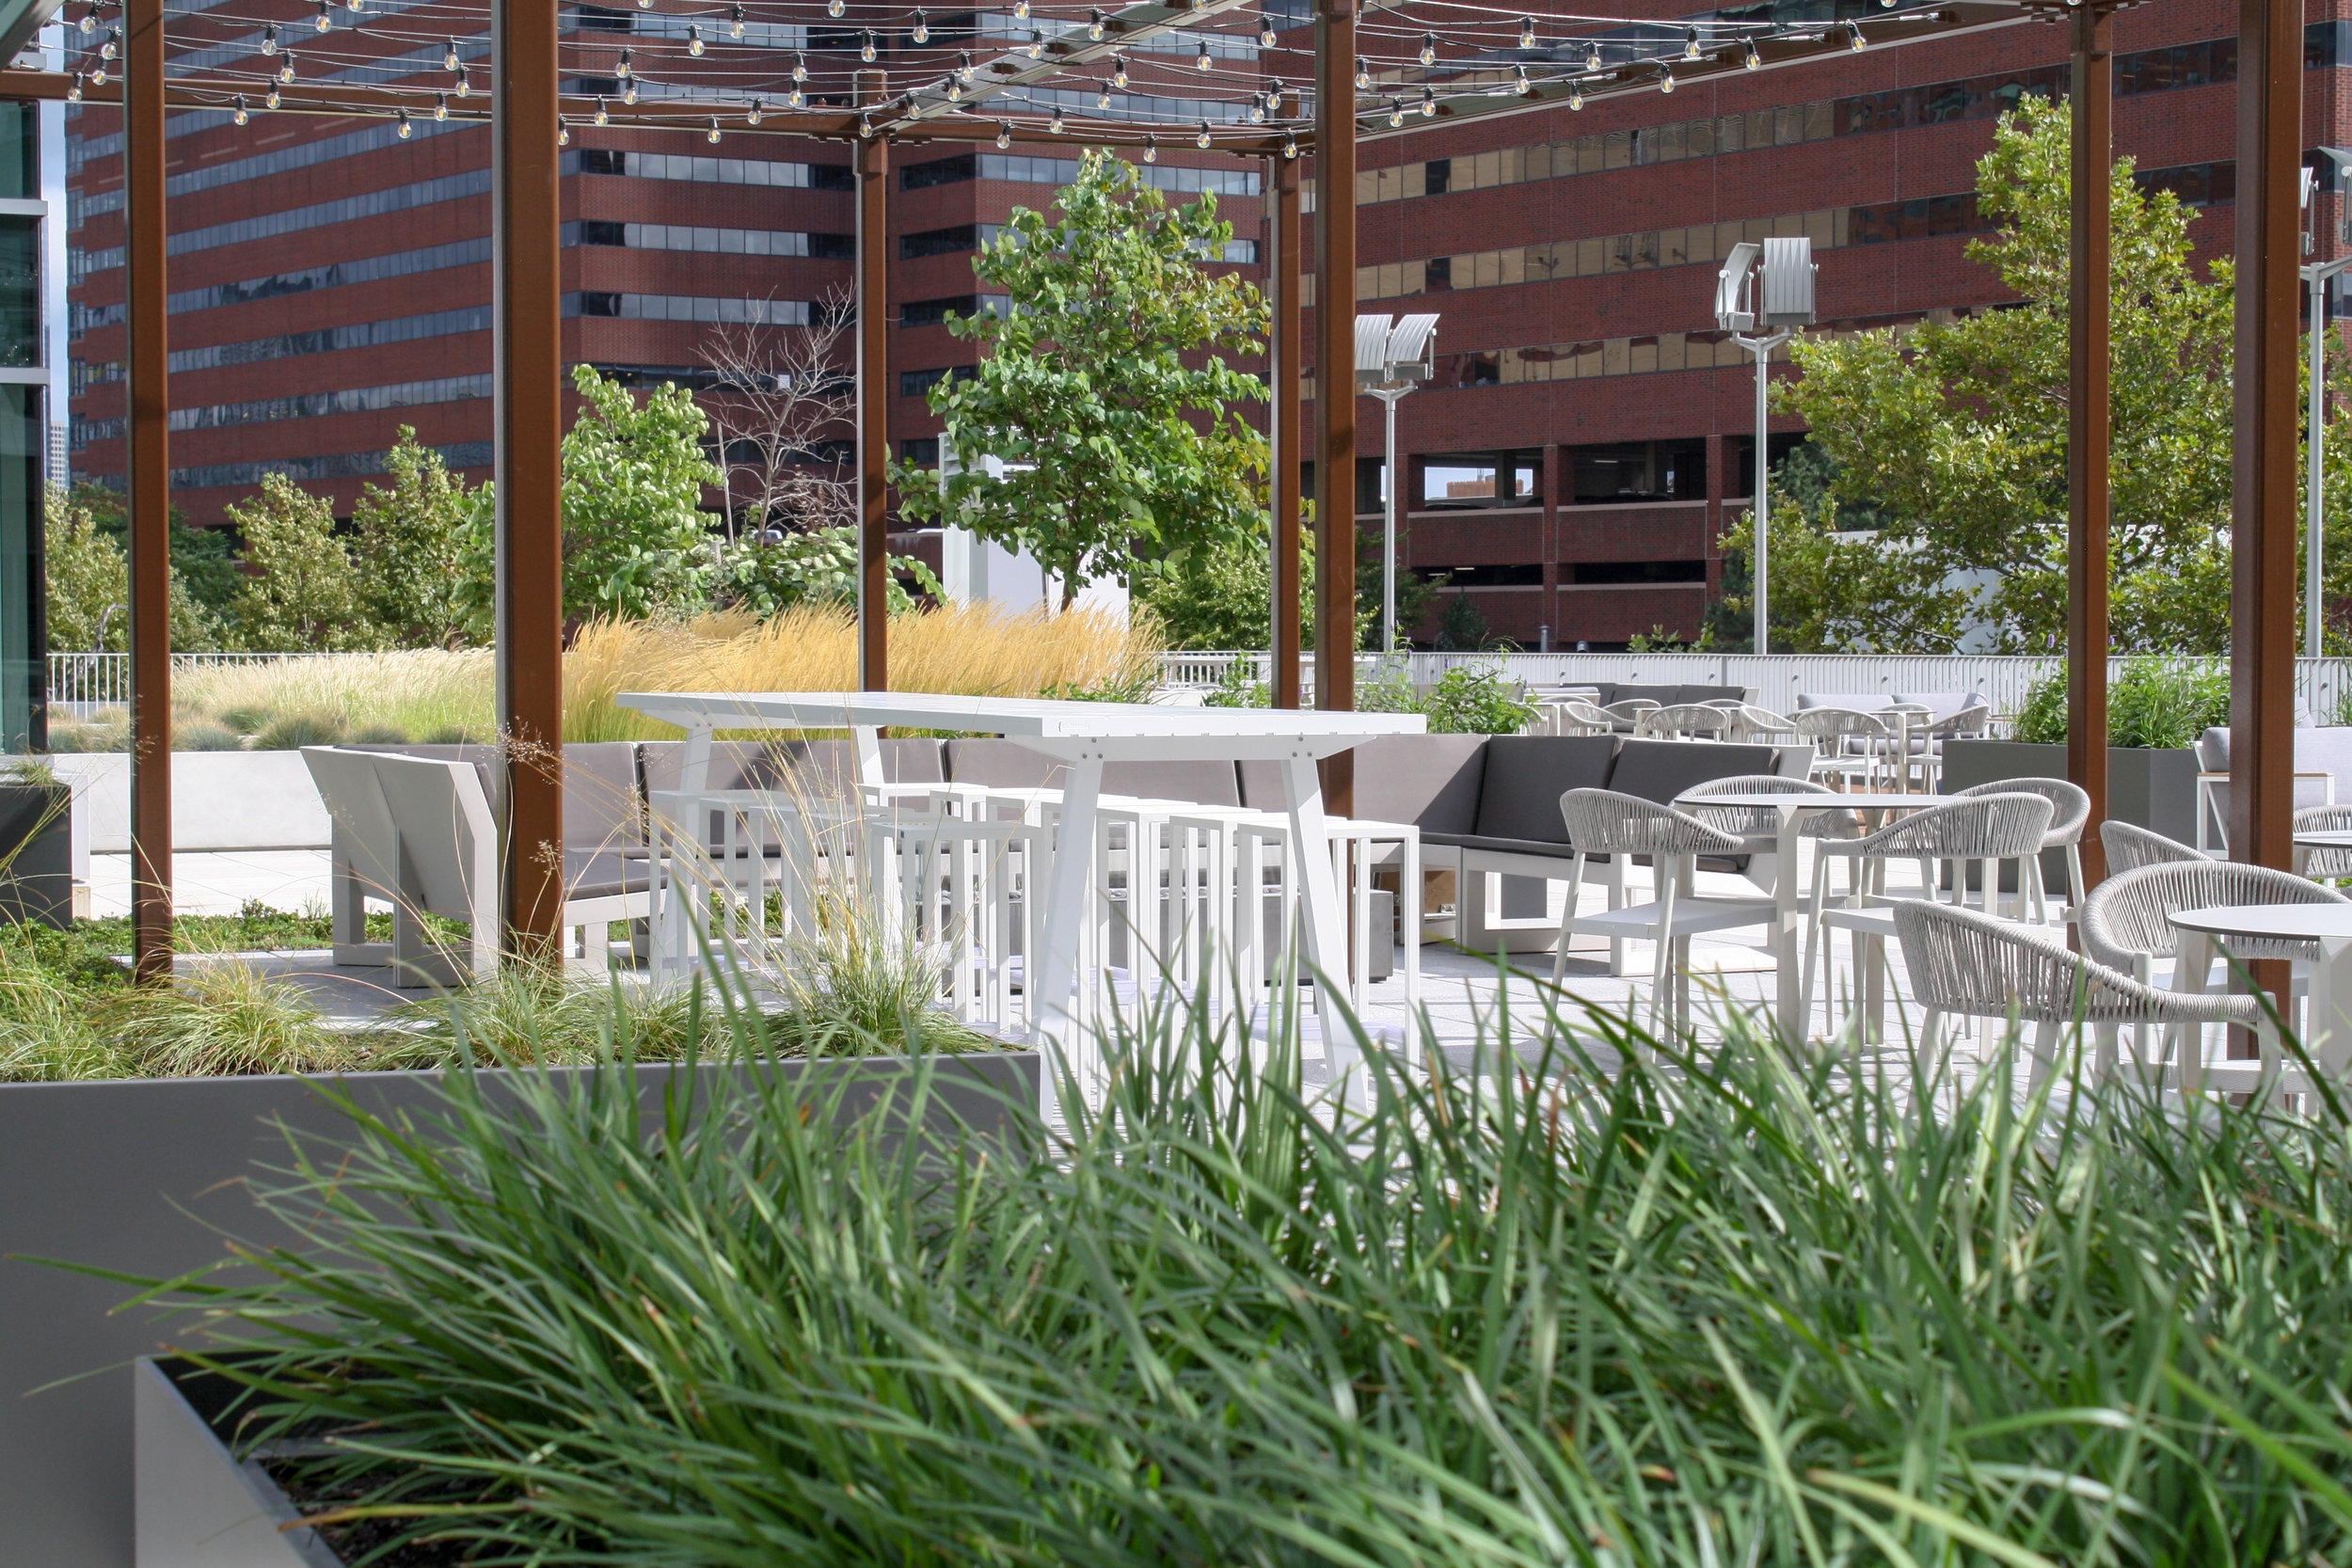 recover-green-roofs-plaza-watermark-19.jpg